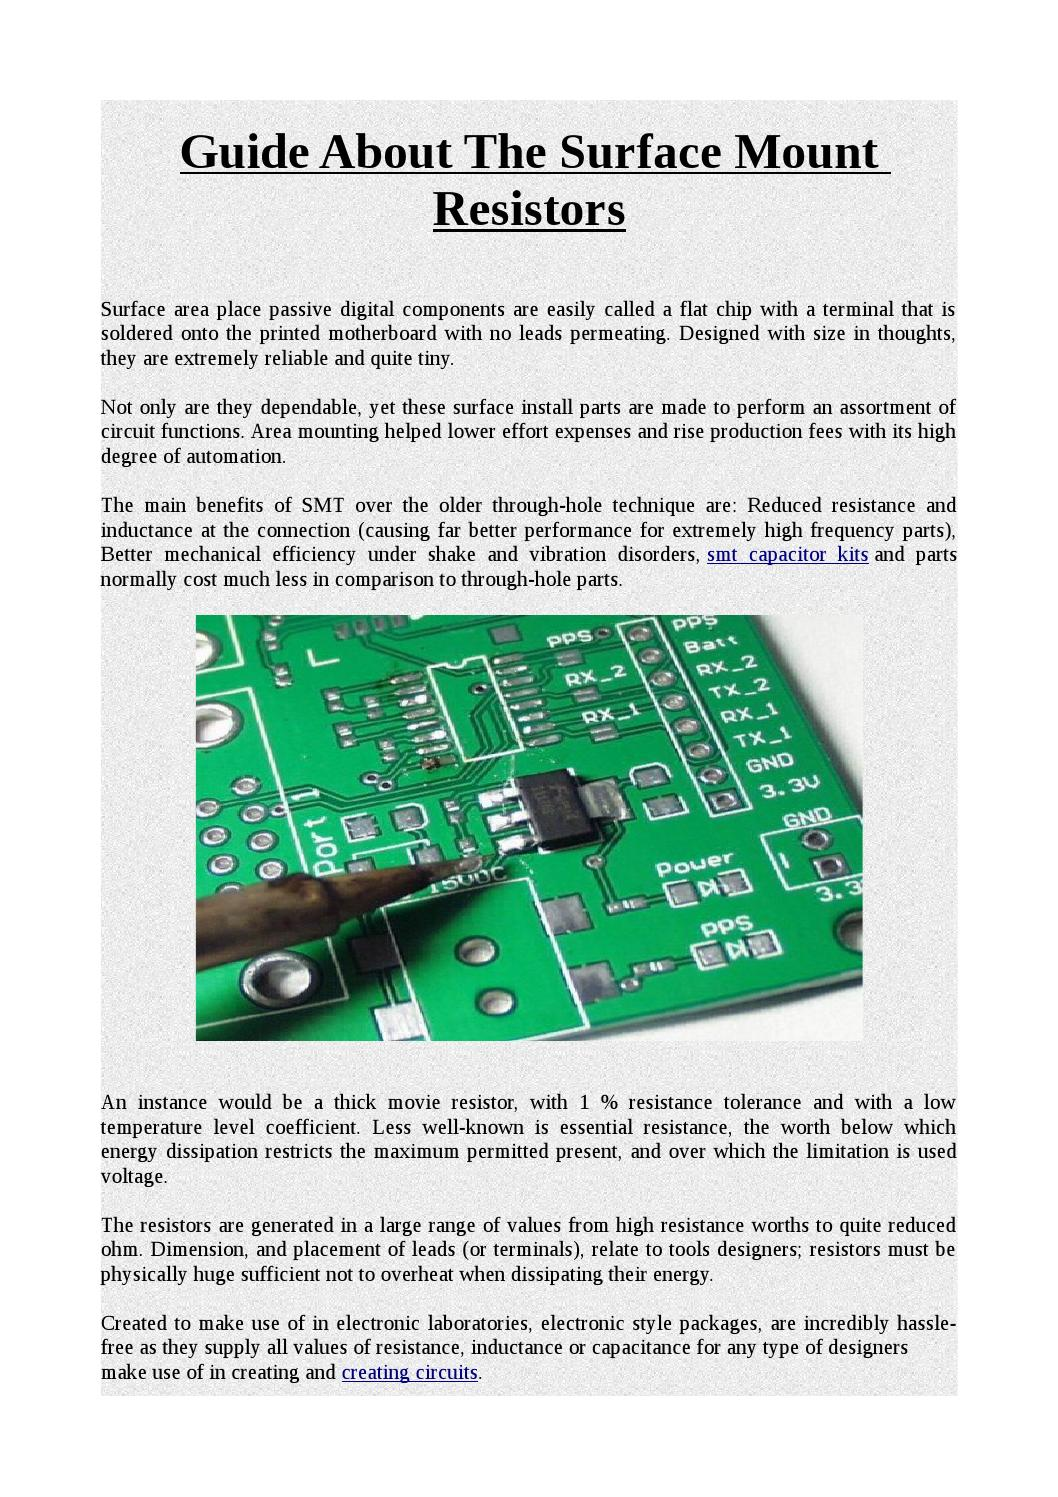 Guide About The Surface Mount Resistors By David Kept Issuu Containing Electronic Components Circuit Is Printed On Its